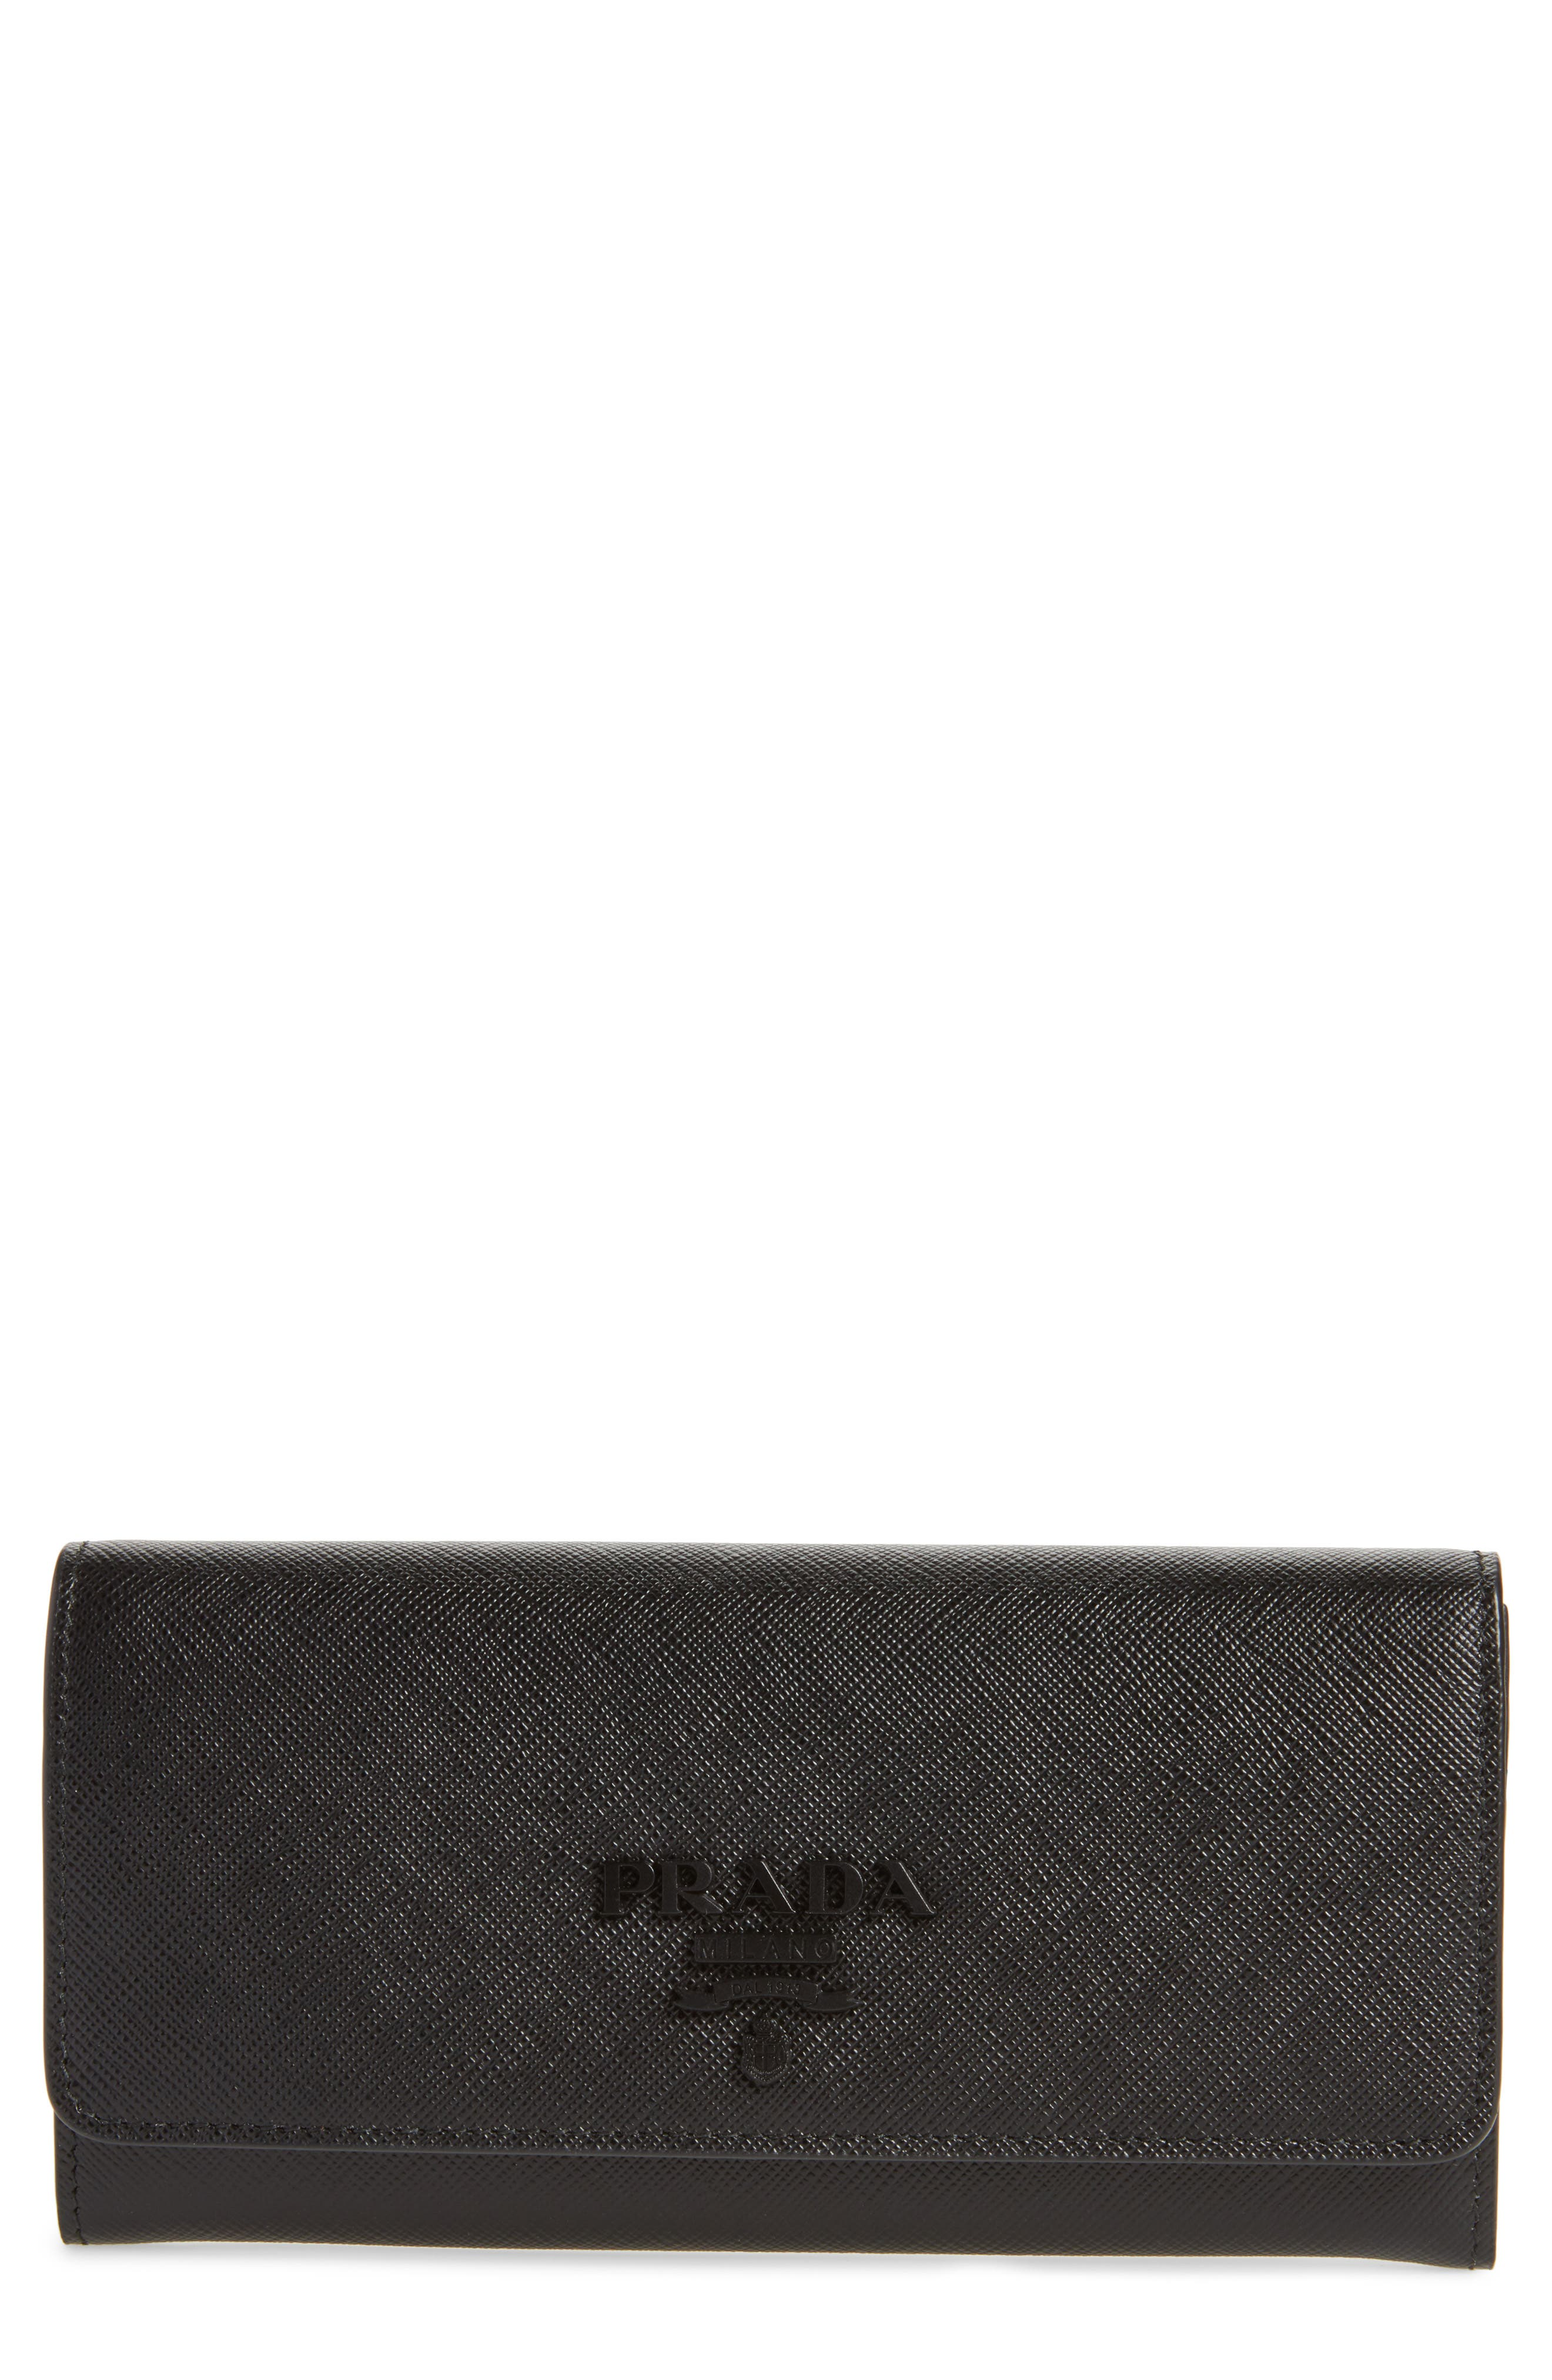 Monochrome Continental Wallet,                             Main thumbnail 1, color,                             NERO